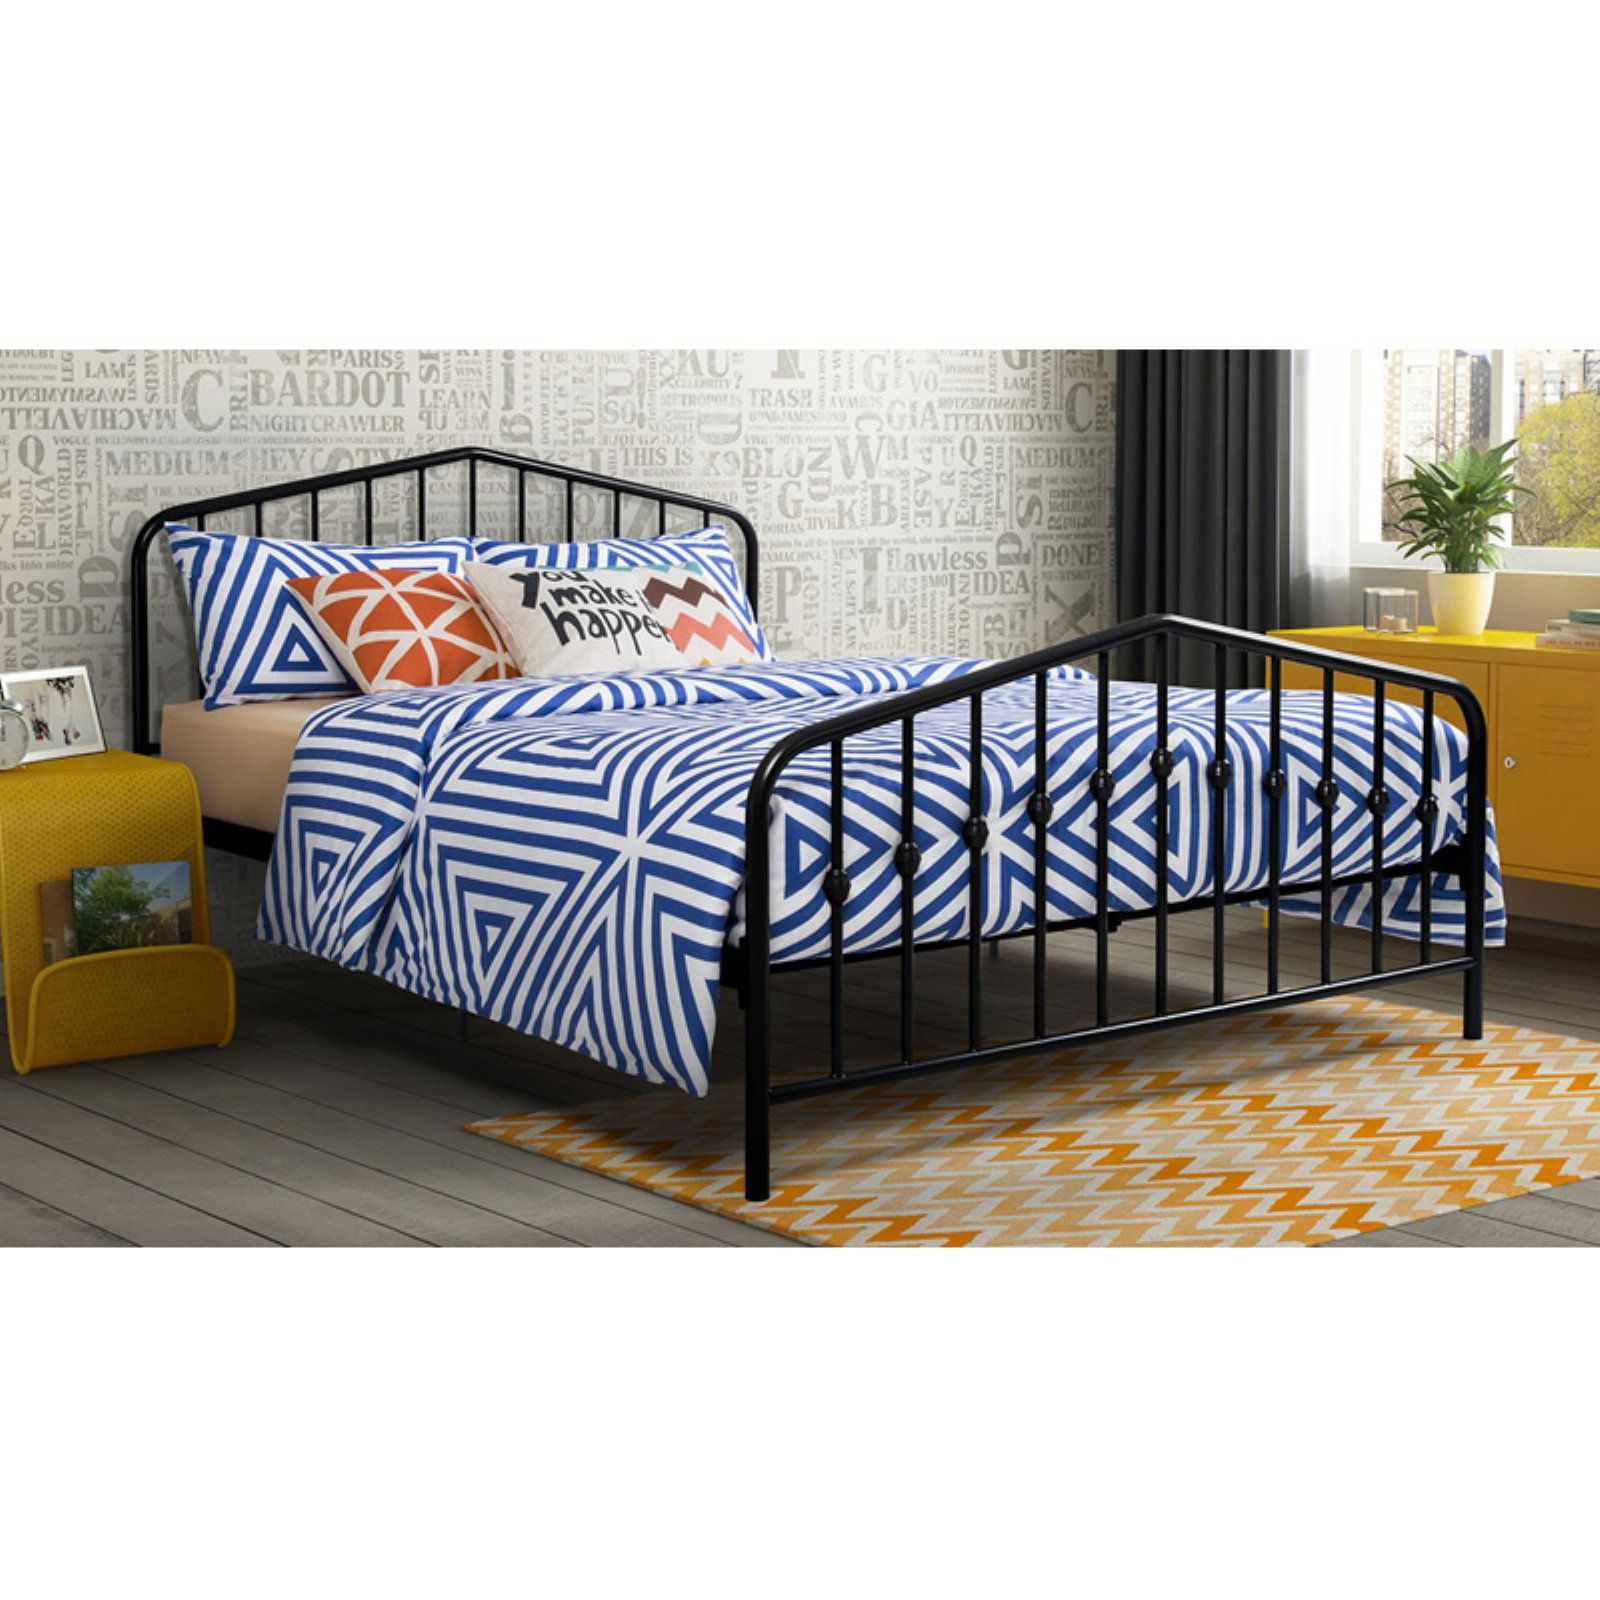 Novogratz Bushwick Queen Bed Black Grey bedroom